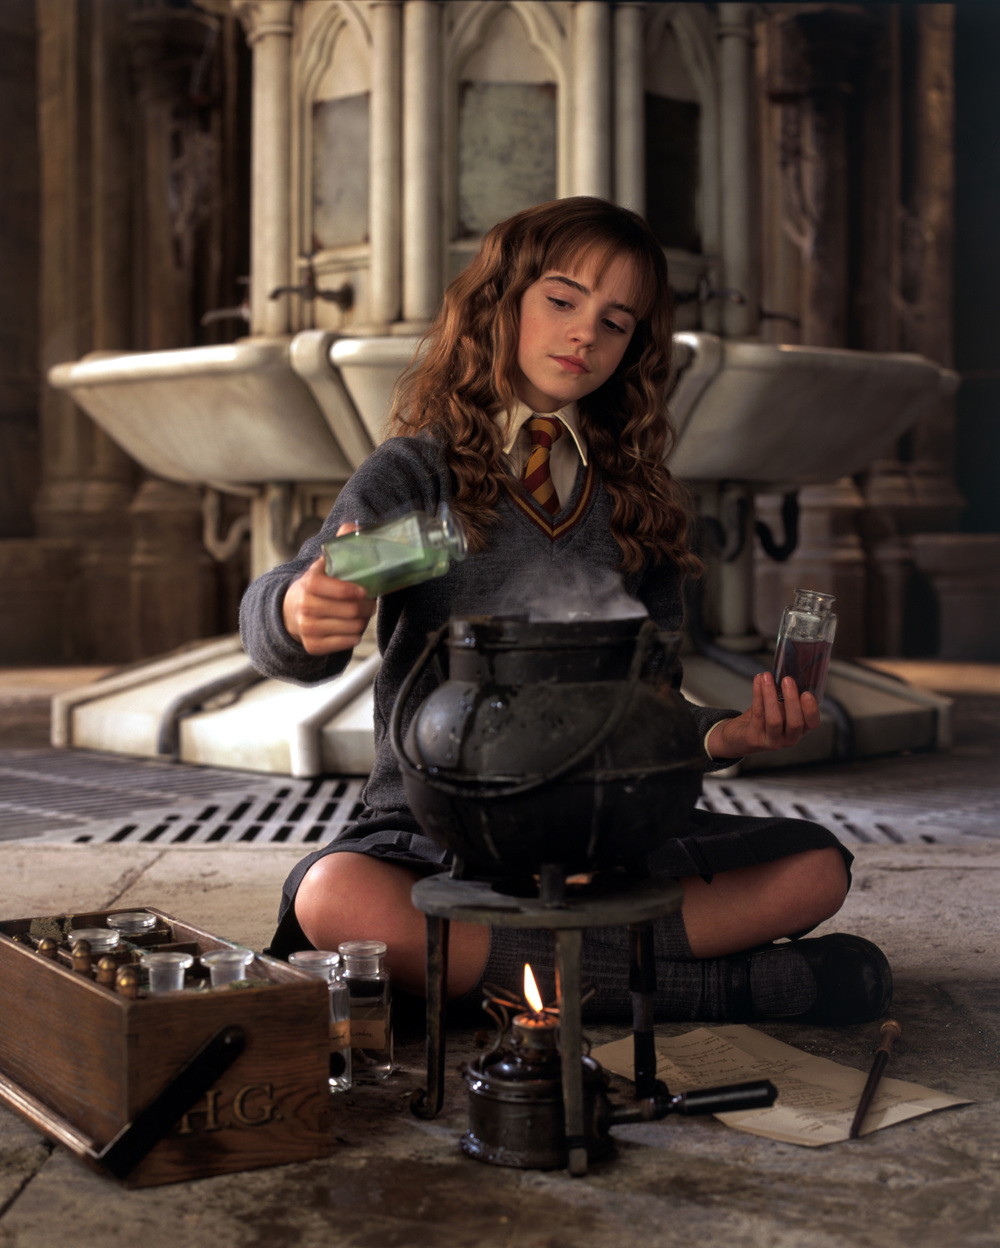 "<a href=""http://www.totallyemmawatson.com/gallery/acting-career/harry-potter-and-the-chamber-of-secrets/promotional-stills"">Promotional Stills</a>"